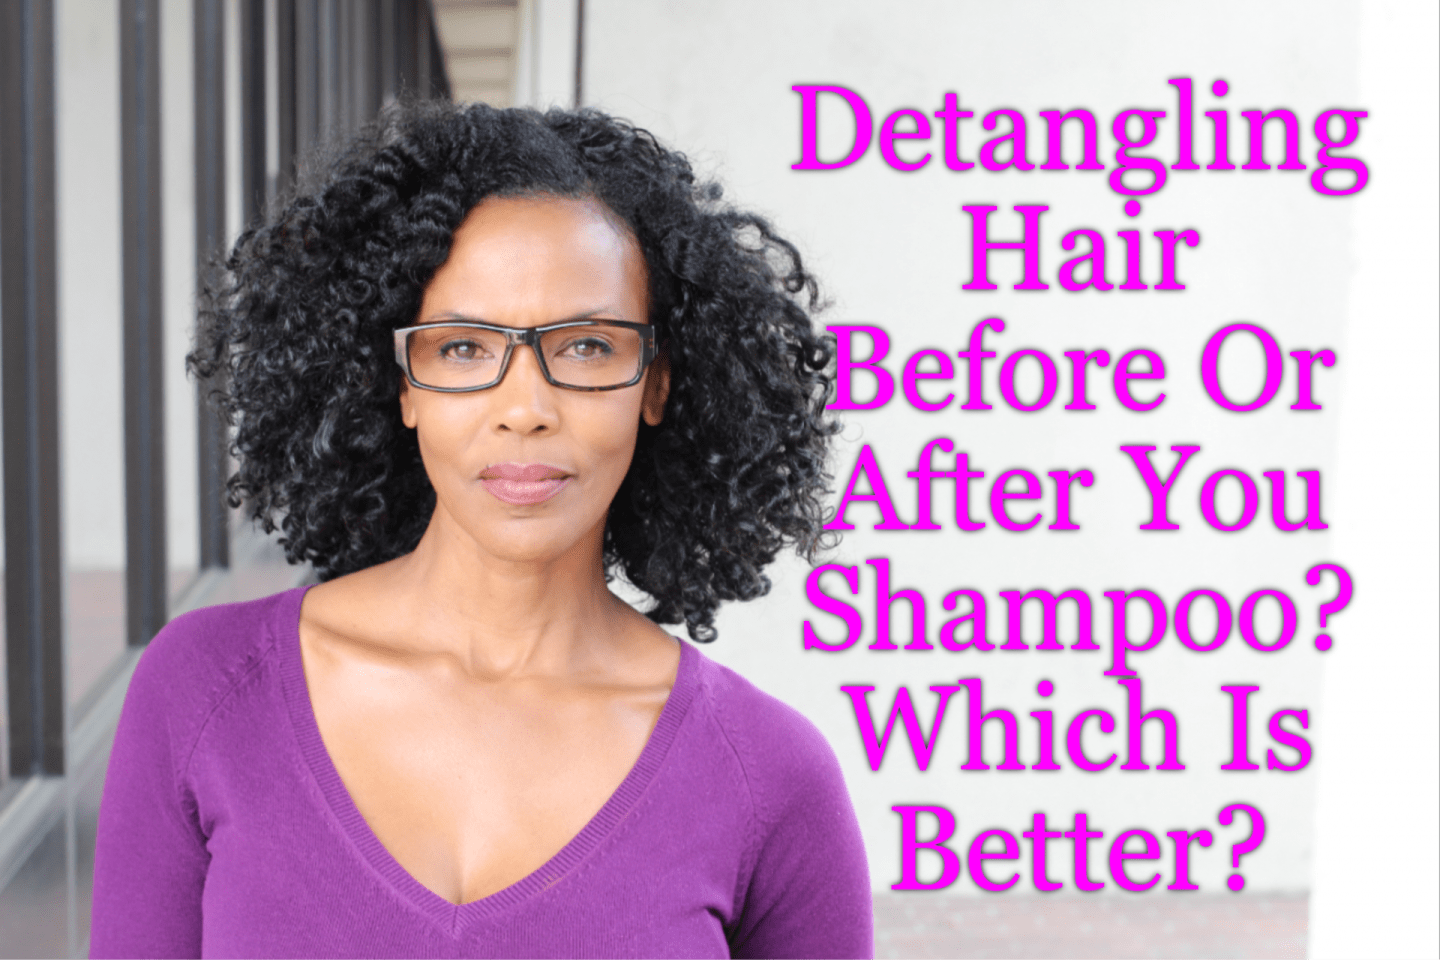 Detangling hair is a necessary component of natural hair and many are confused on just when to do it. We've got the pros and cons on before or after shampoo.